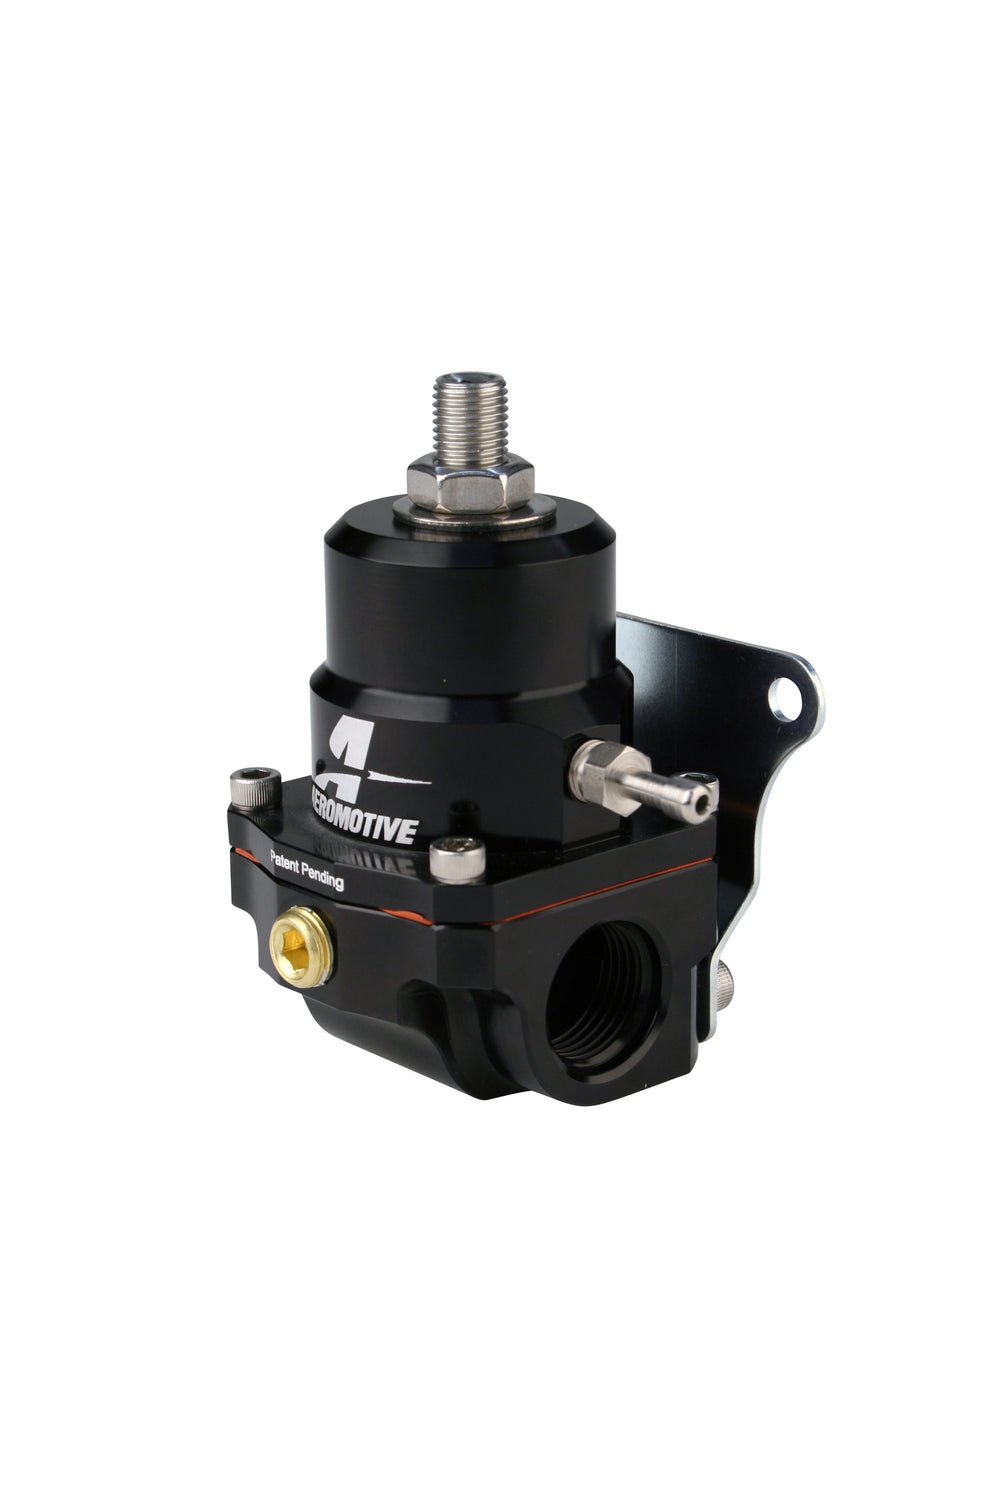 NEW A1000 Regulator, Adjustable, EFI, (2)-8 inlets, (1) -6 return.